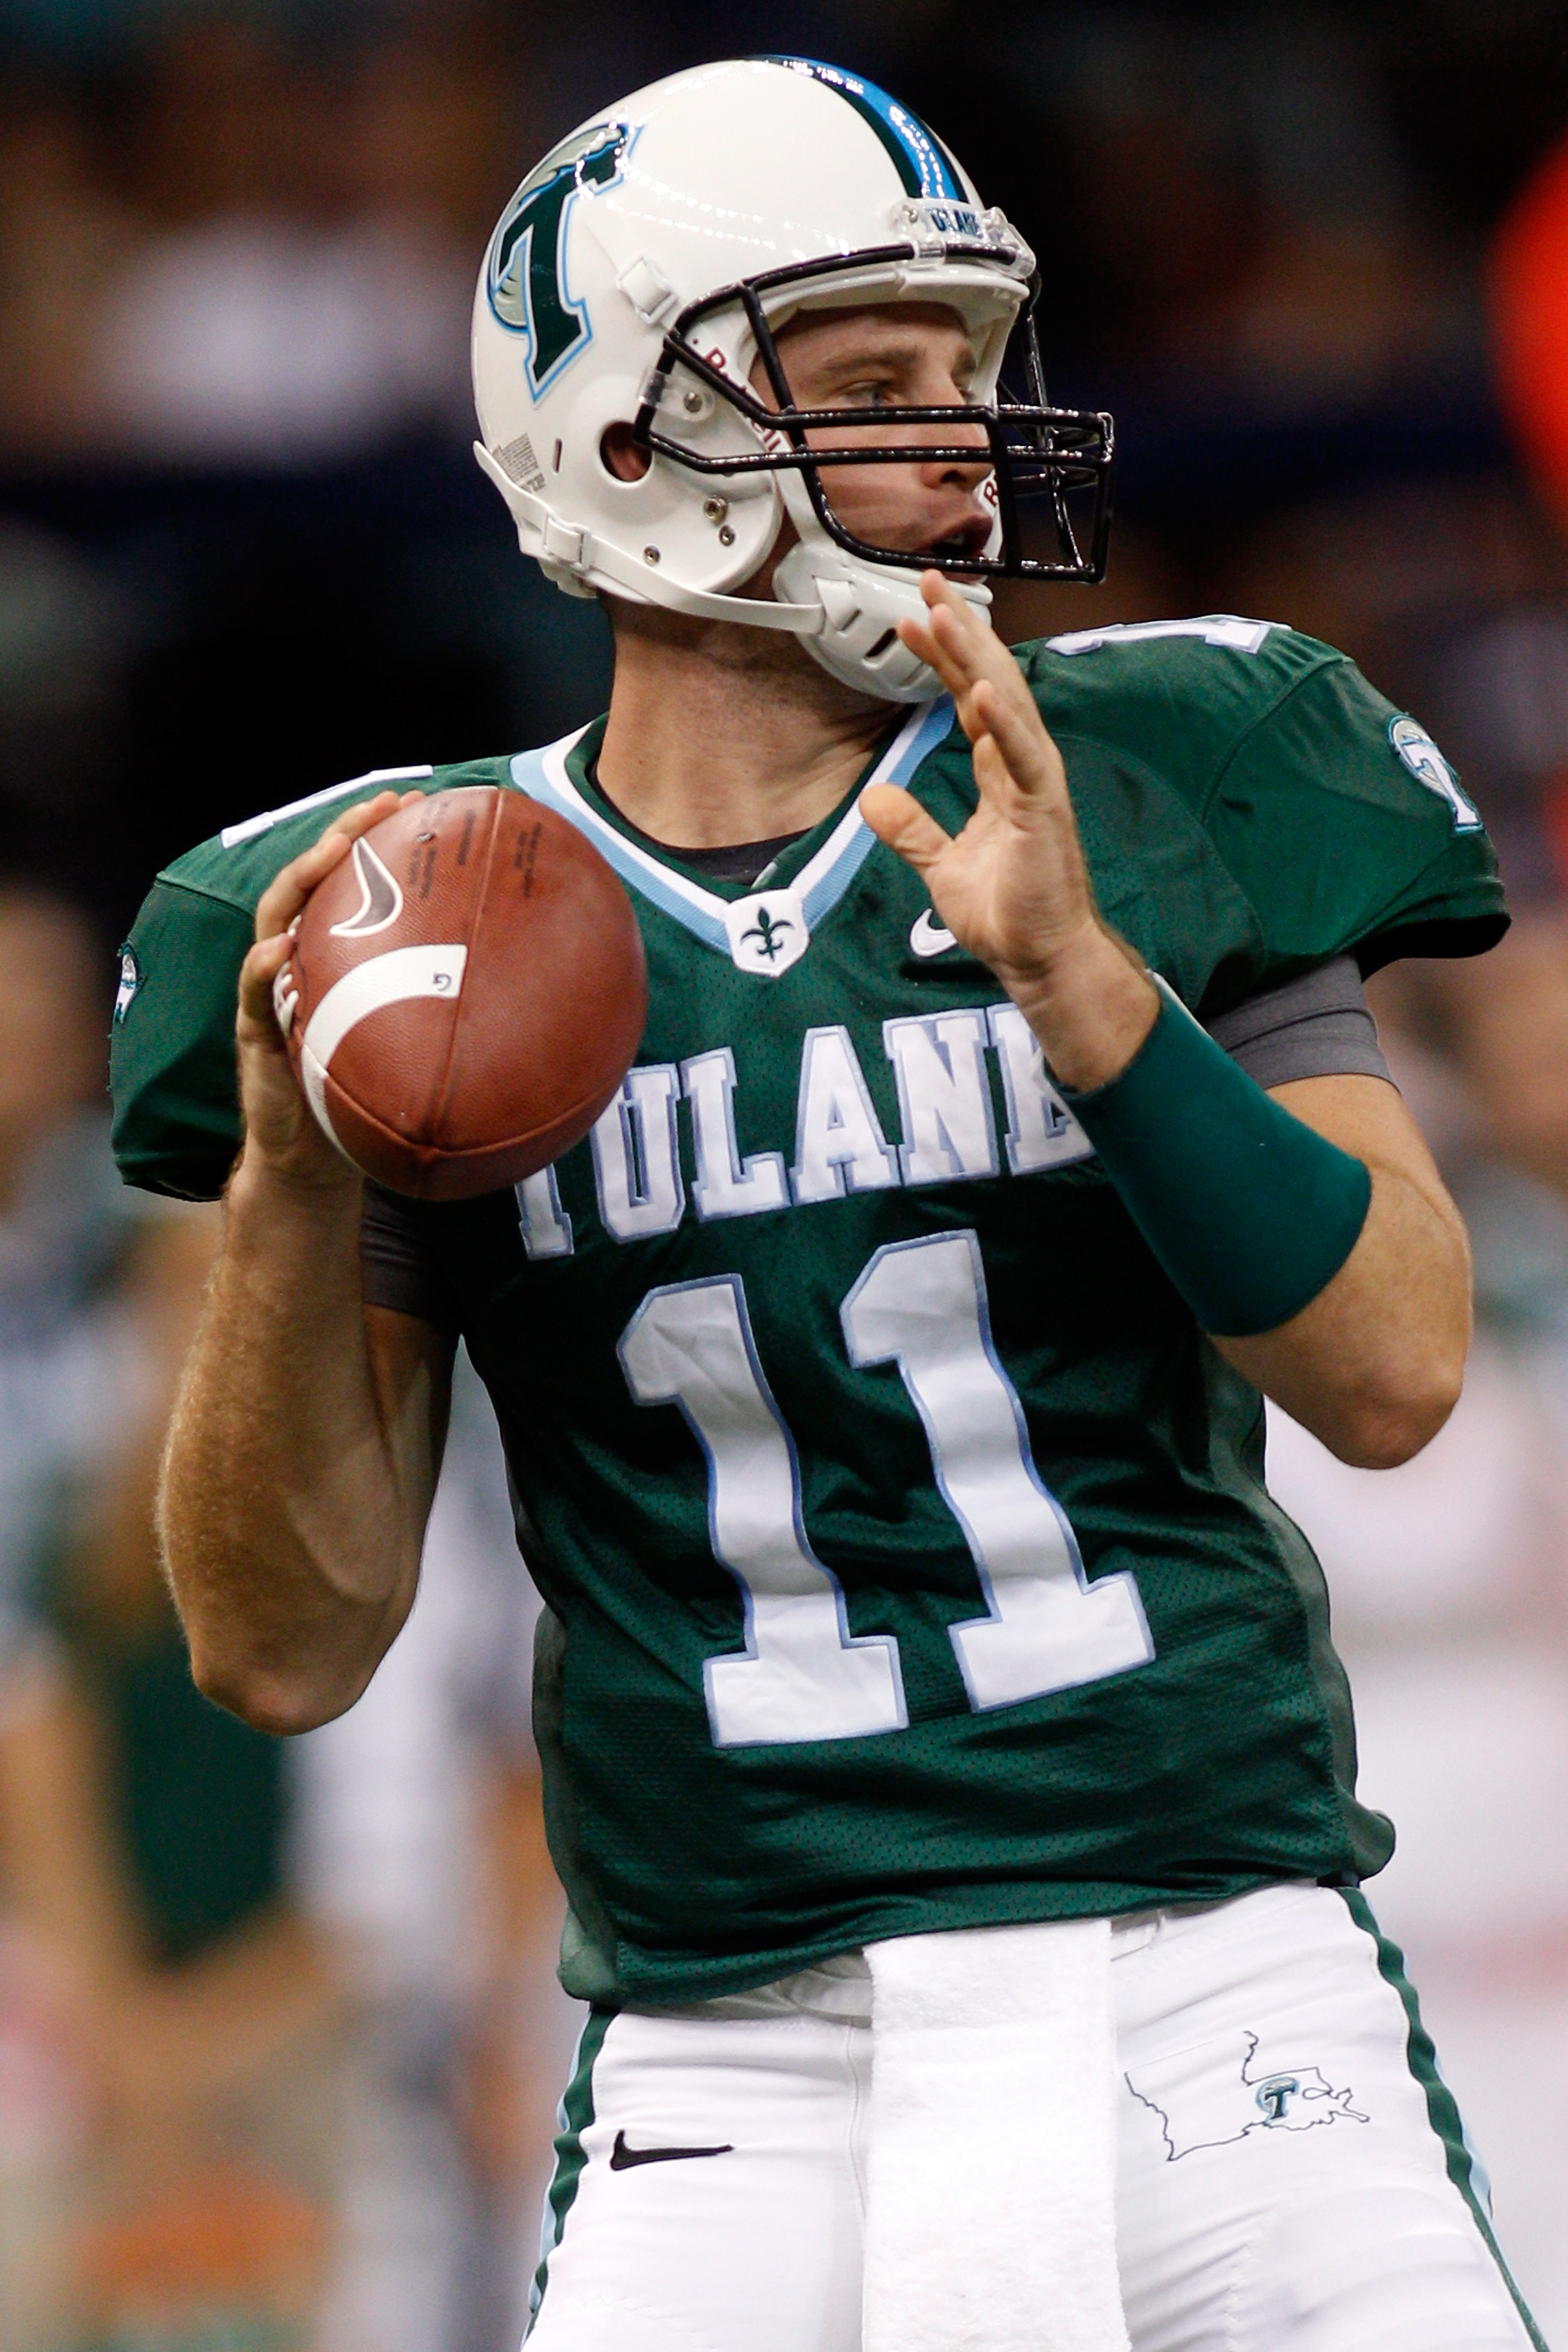 NEW ORLEANS - SEPTEMBER 11:  Ryan Griffin #11 of the Tulane Green Wave looks to throw a pass against the Ole Miss Rebels at the Louisiana Superdome on September 11, 2010 in New Orleans, Louisiana.  (Photo by Chris Graythen/Getty Images)